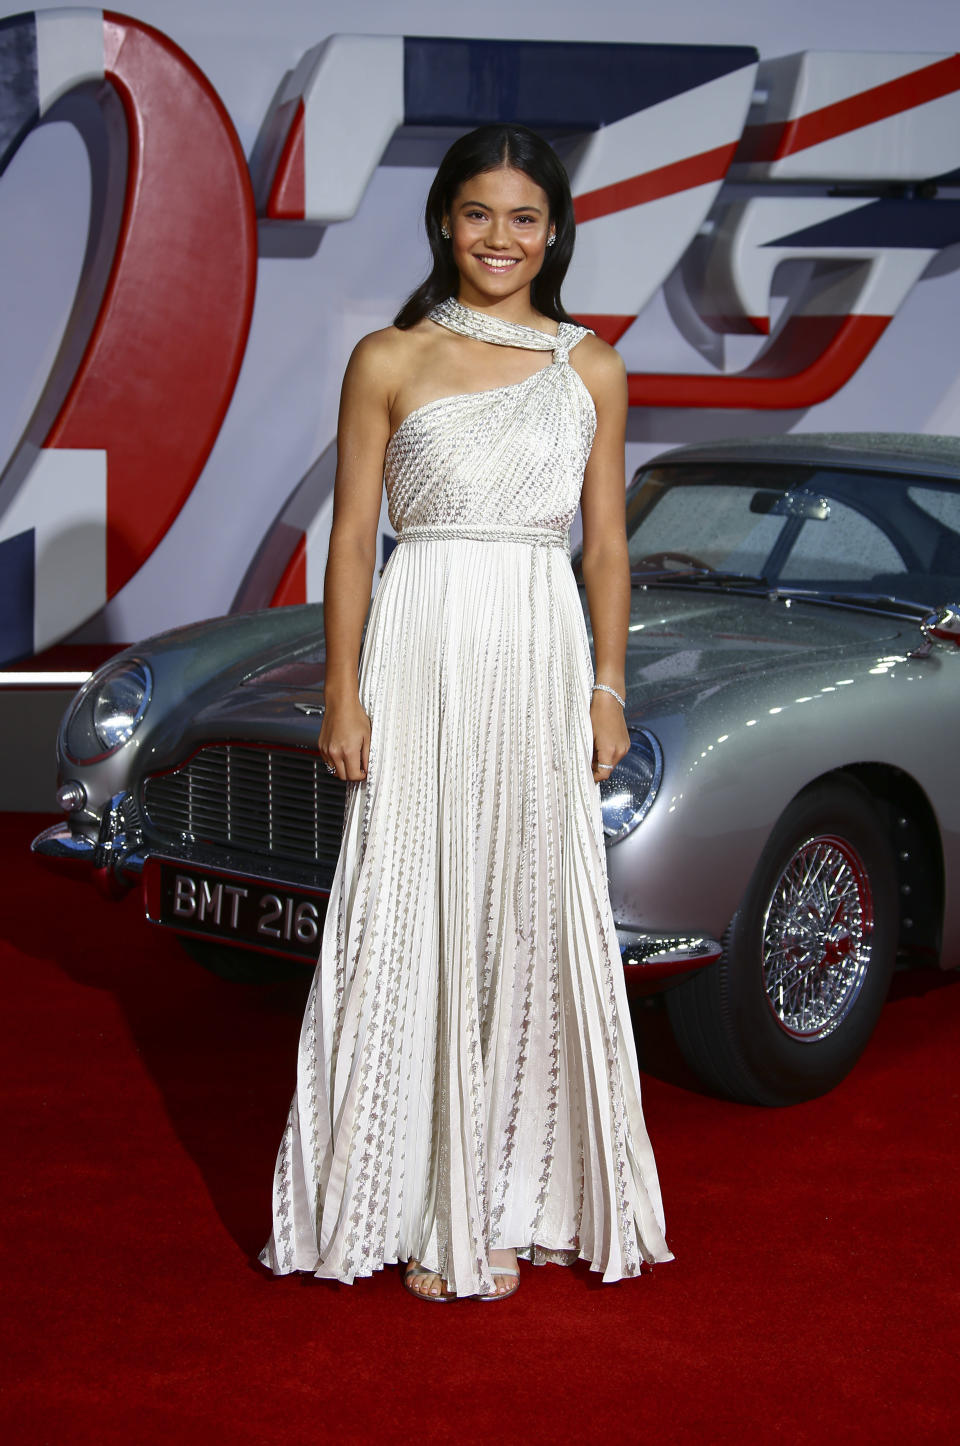 Emma Raducanu poses for photographers upon arrival for the World premiere of the new film from the James Bond franchise 'No Time To Die', in London Tuesday, Sept. 28, 2021. (Photo by Joel C Ryan/Invision/AP)